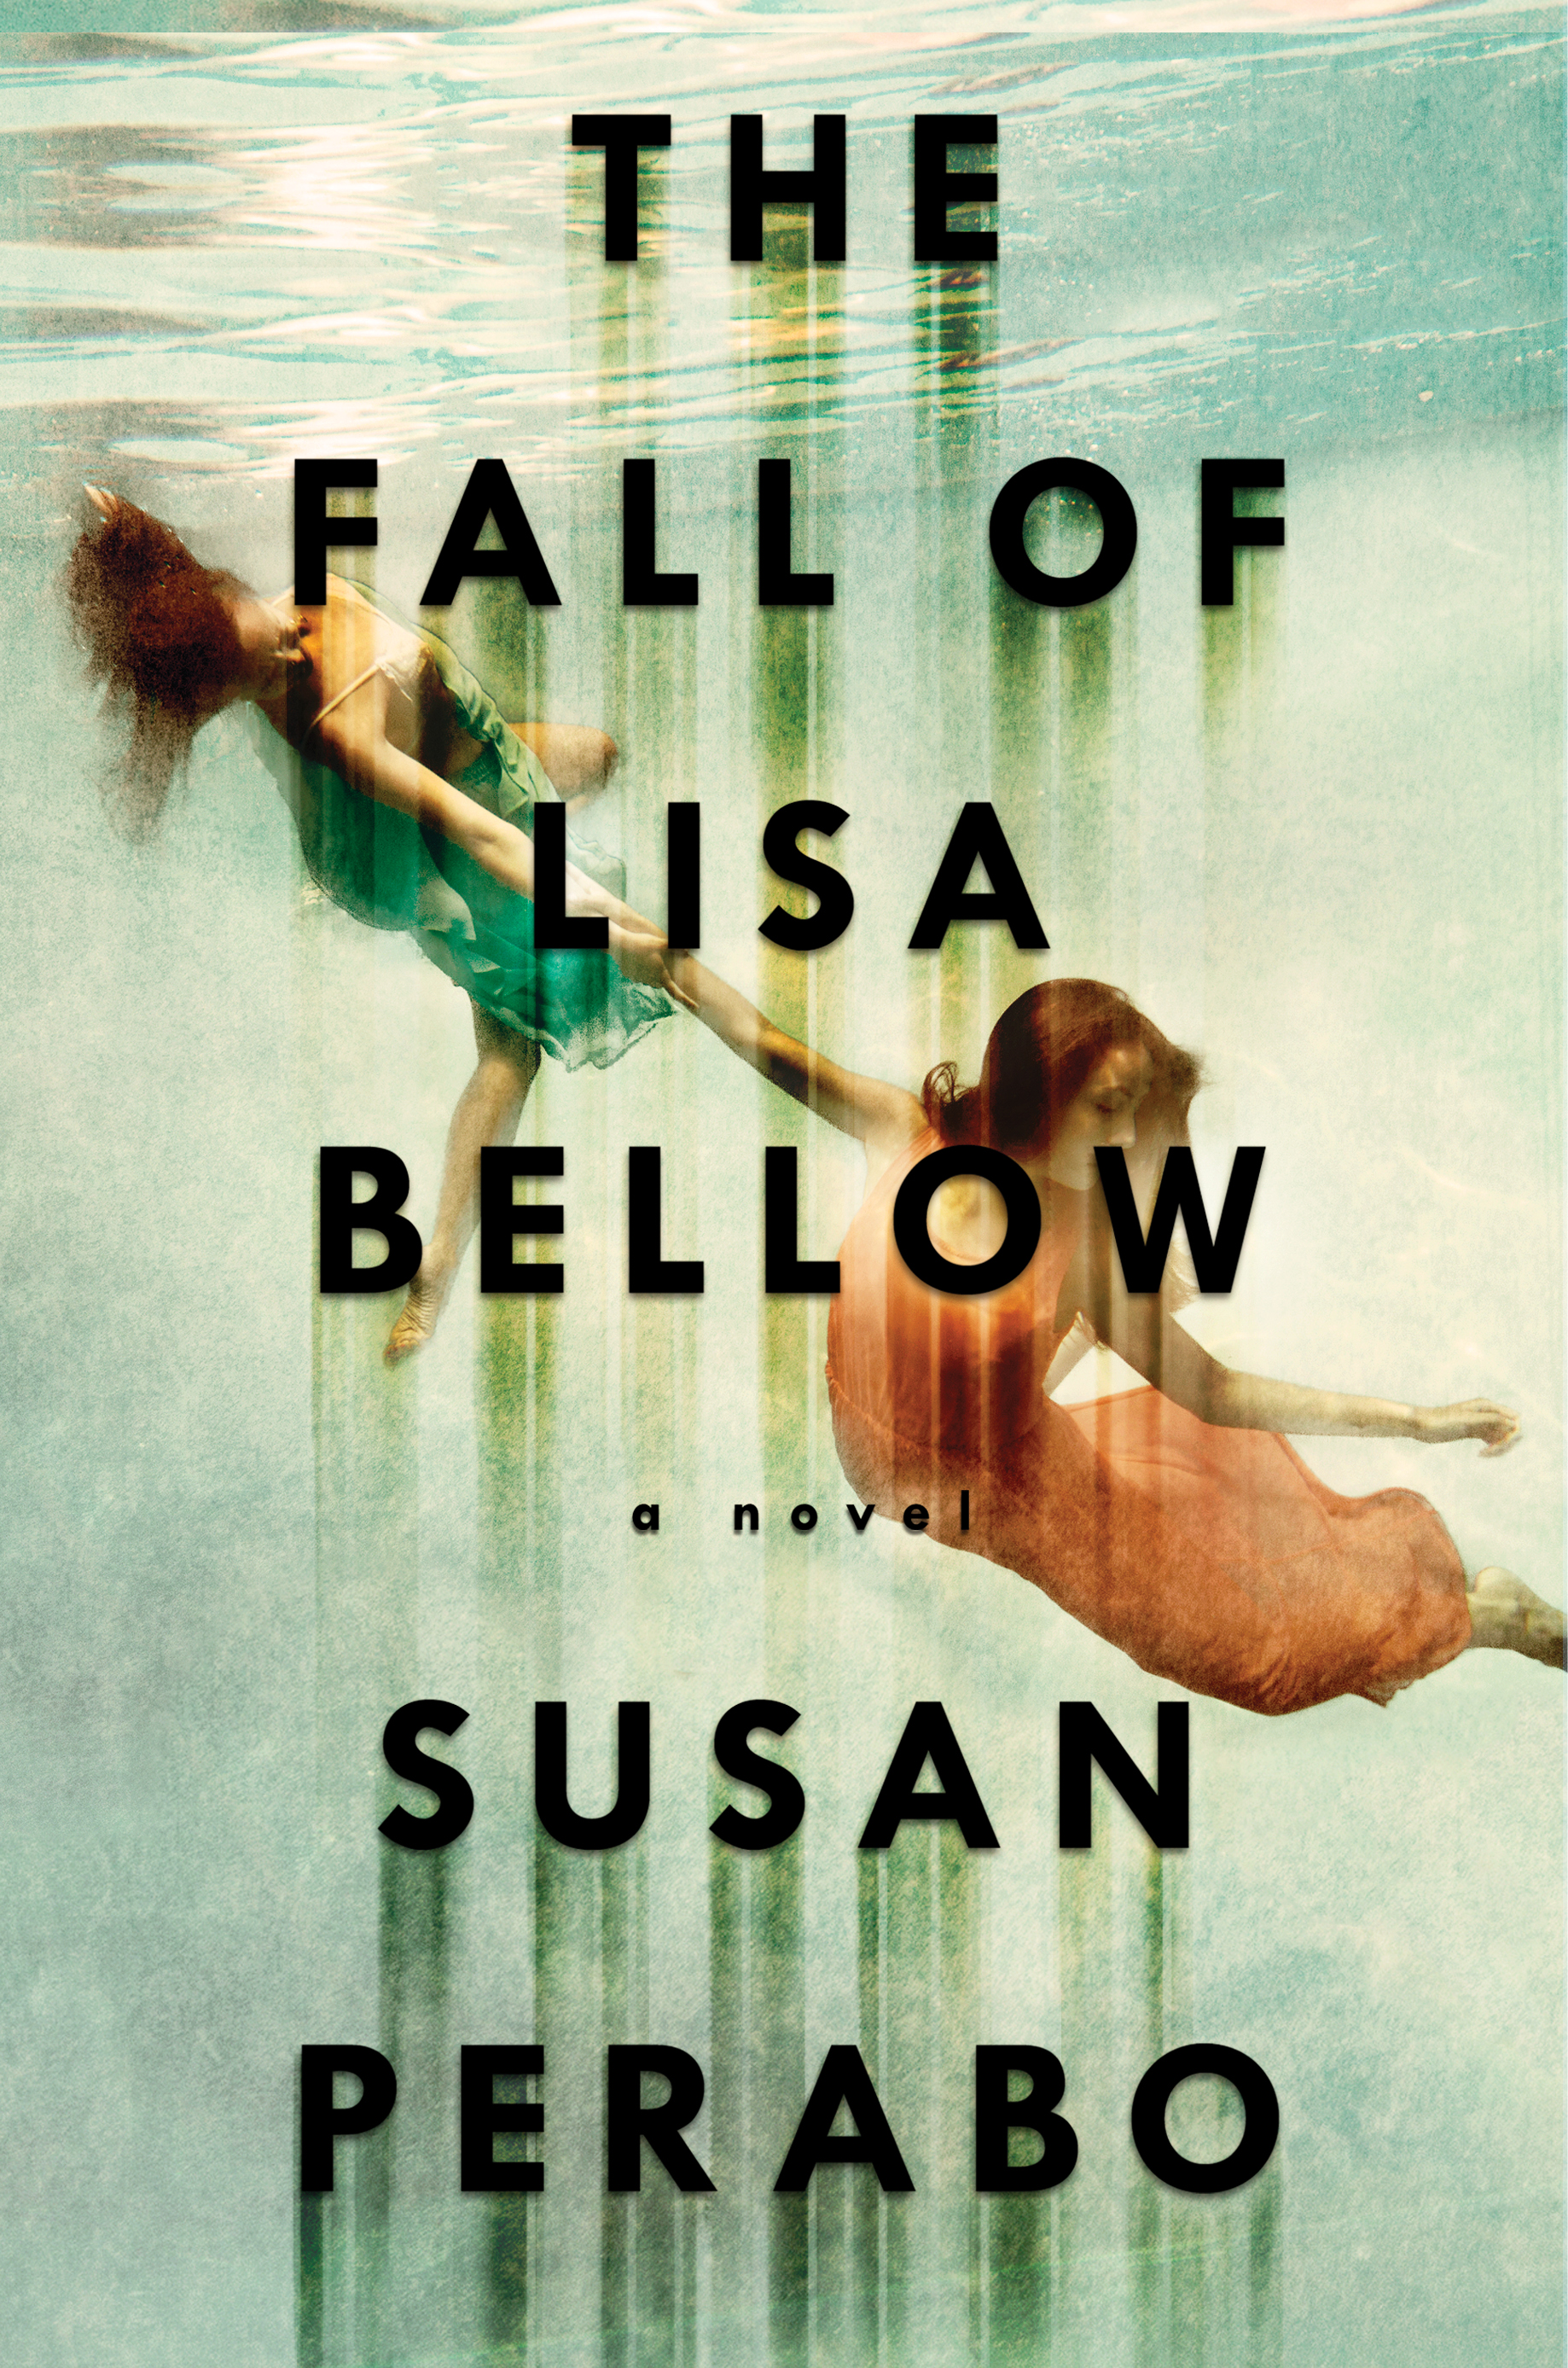 Book Launch: The Fall of Lisa Bellow by Susan Perabo